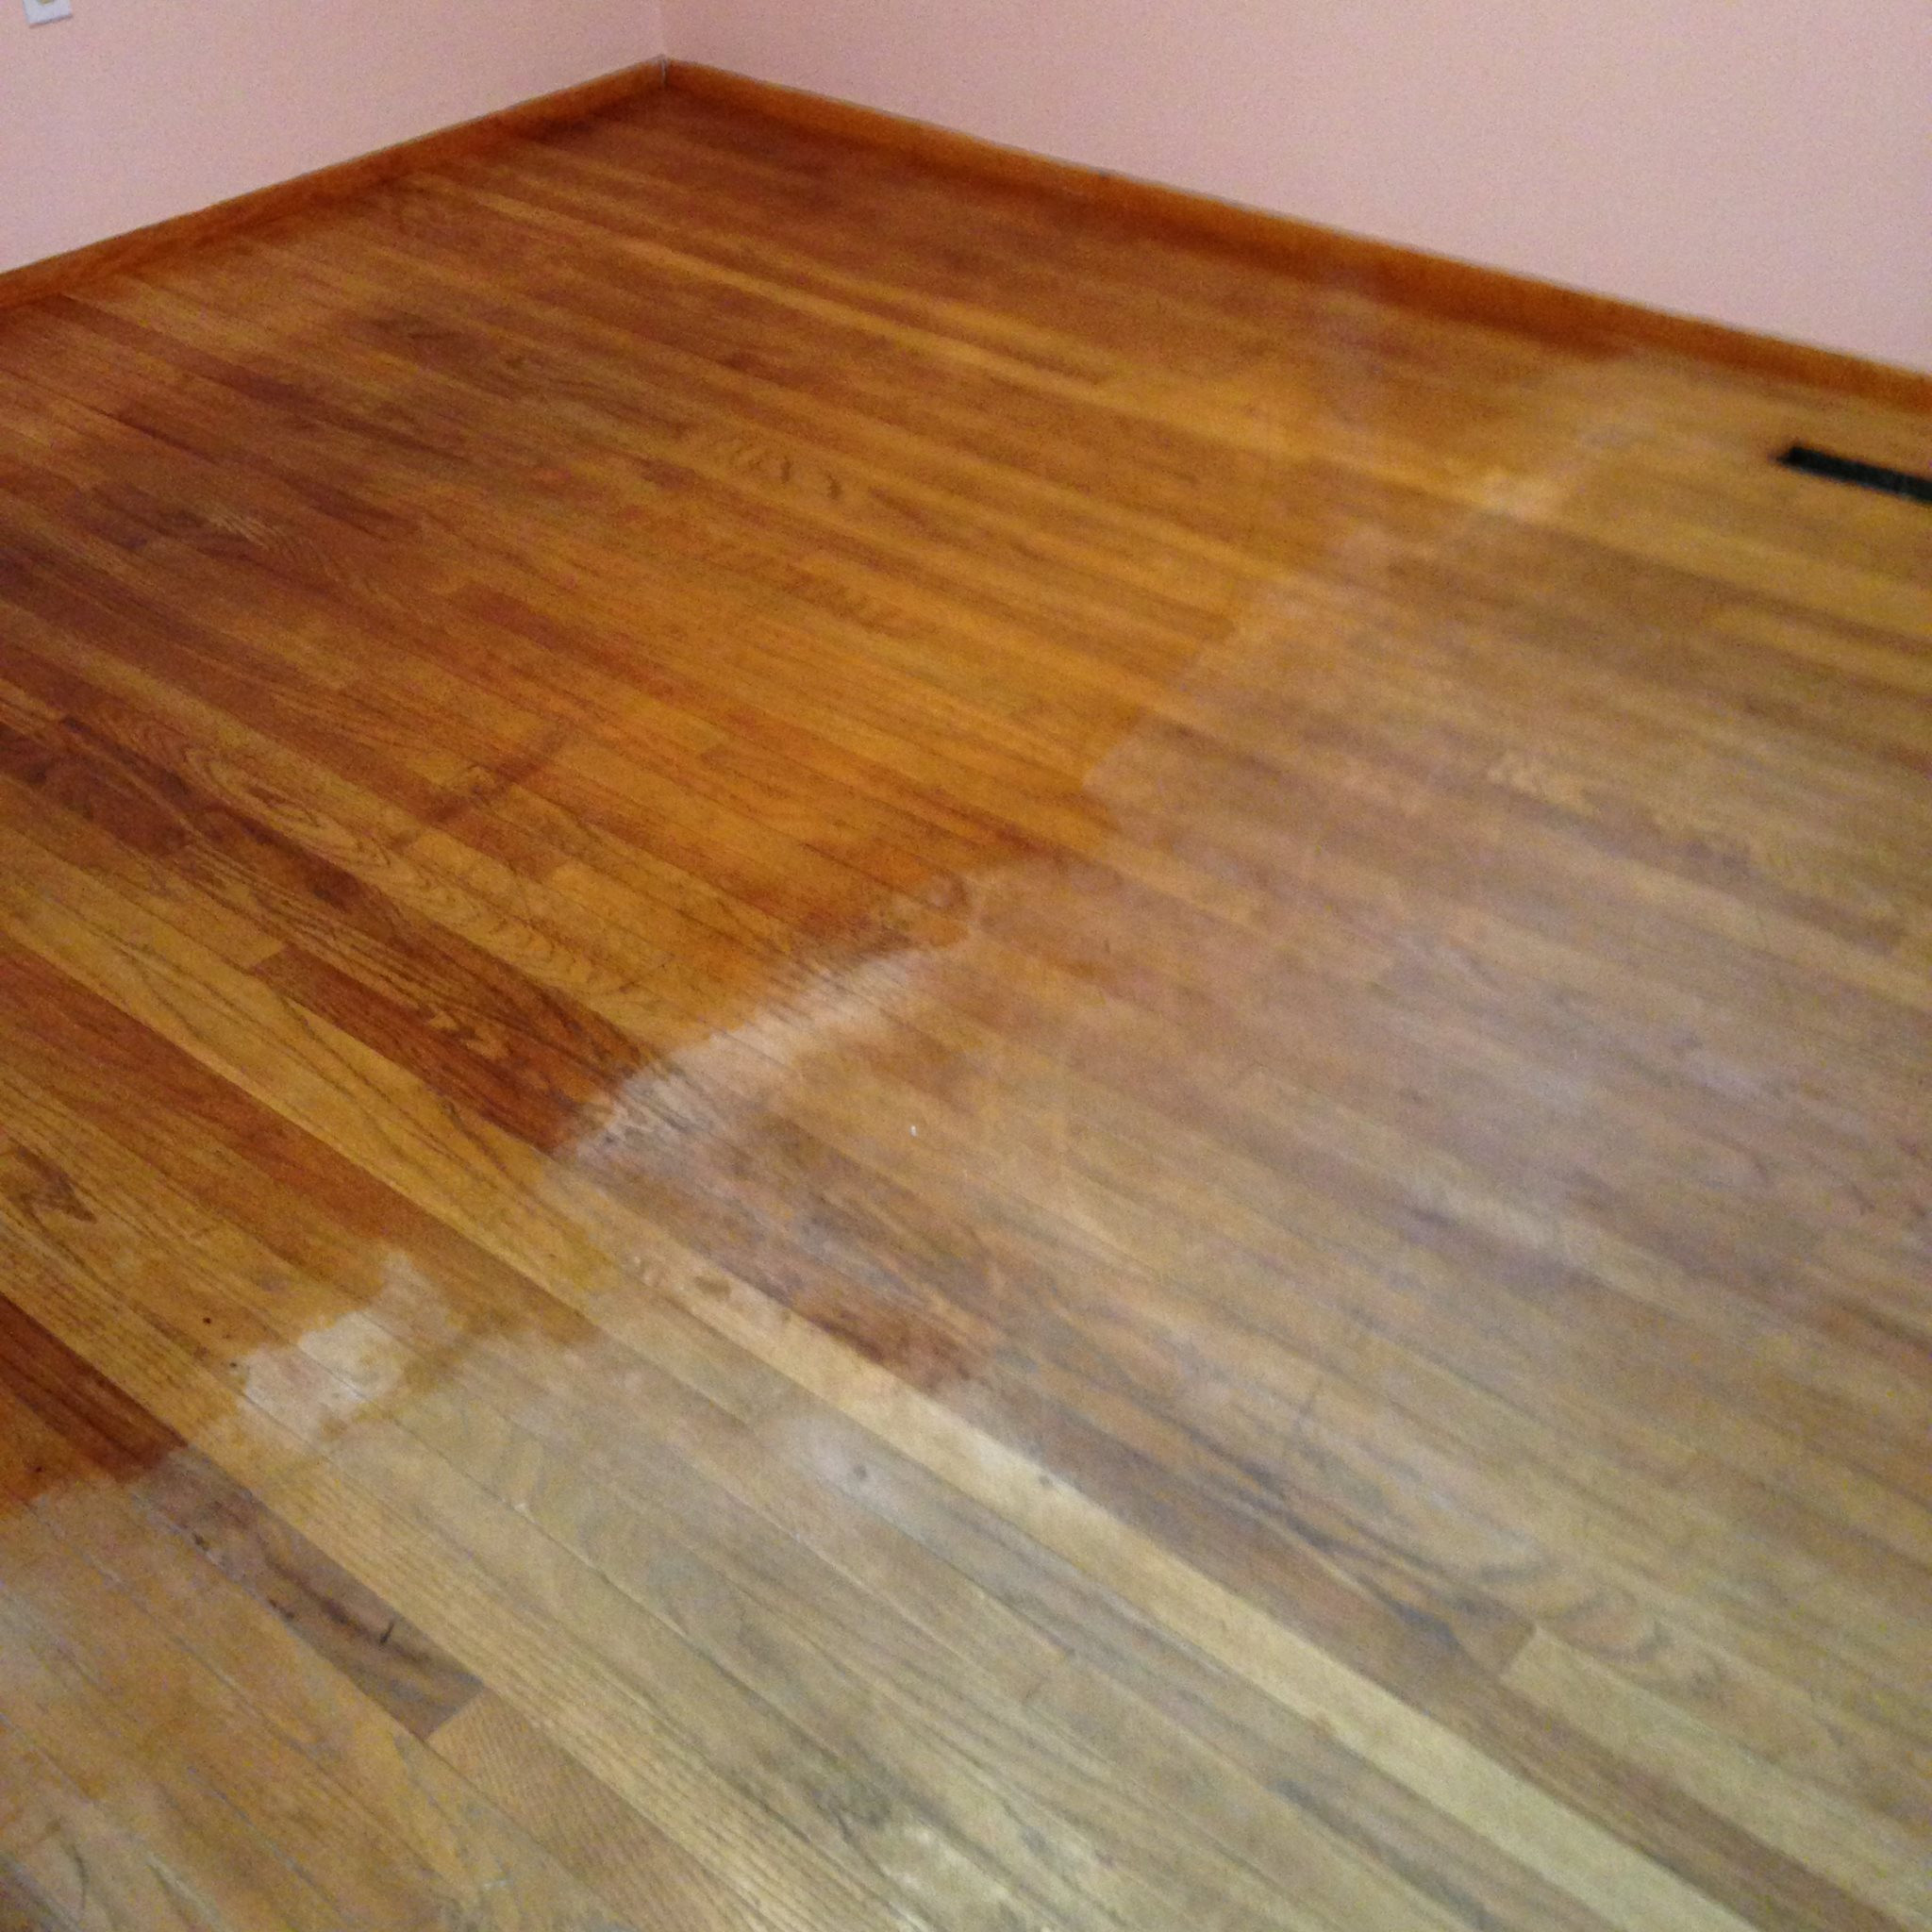 hardwood floor repair gaps in the planks of 15 wood floor hacks every homeowner needs to know inside wood floor hacks 15